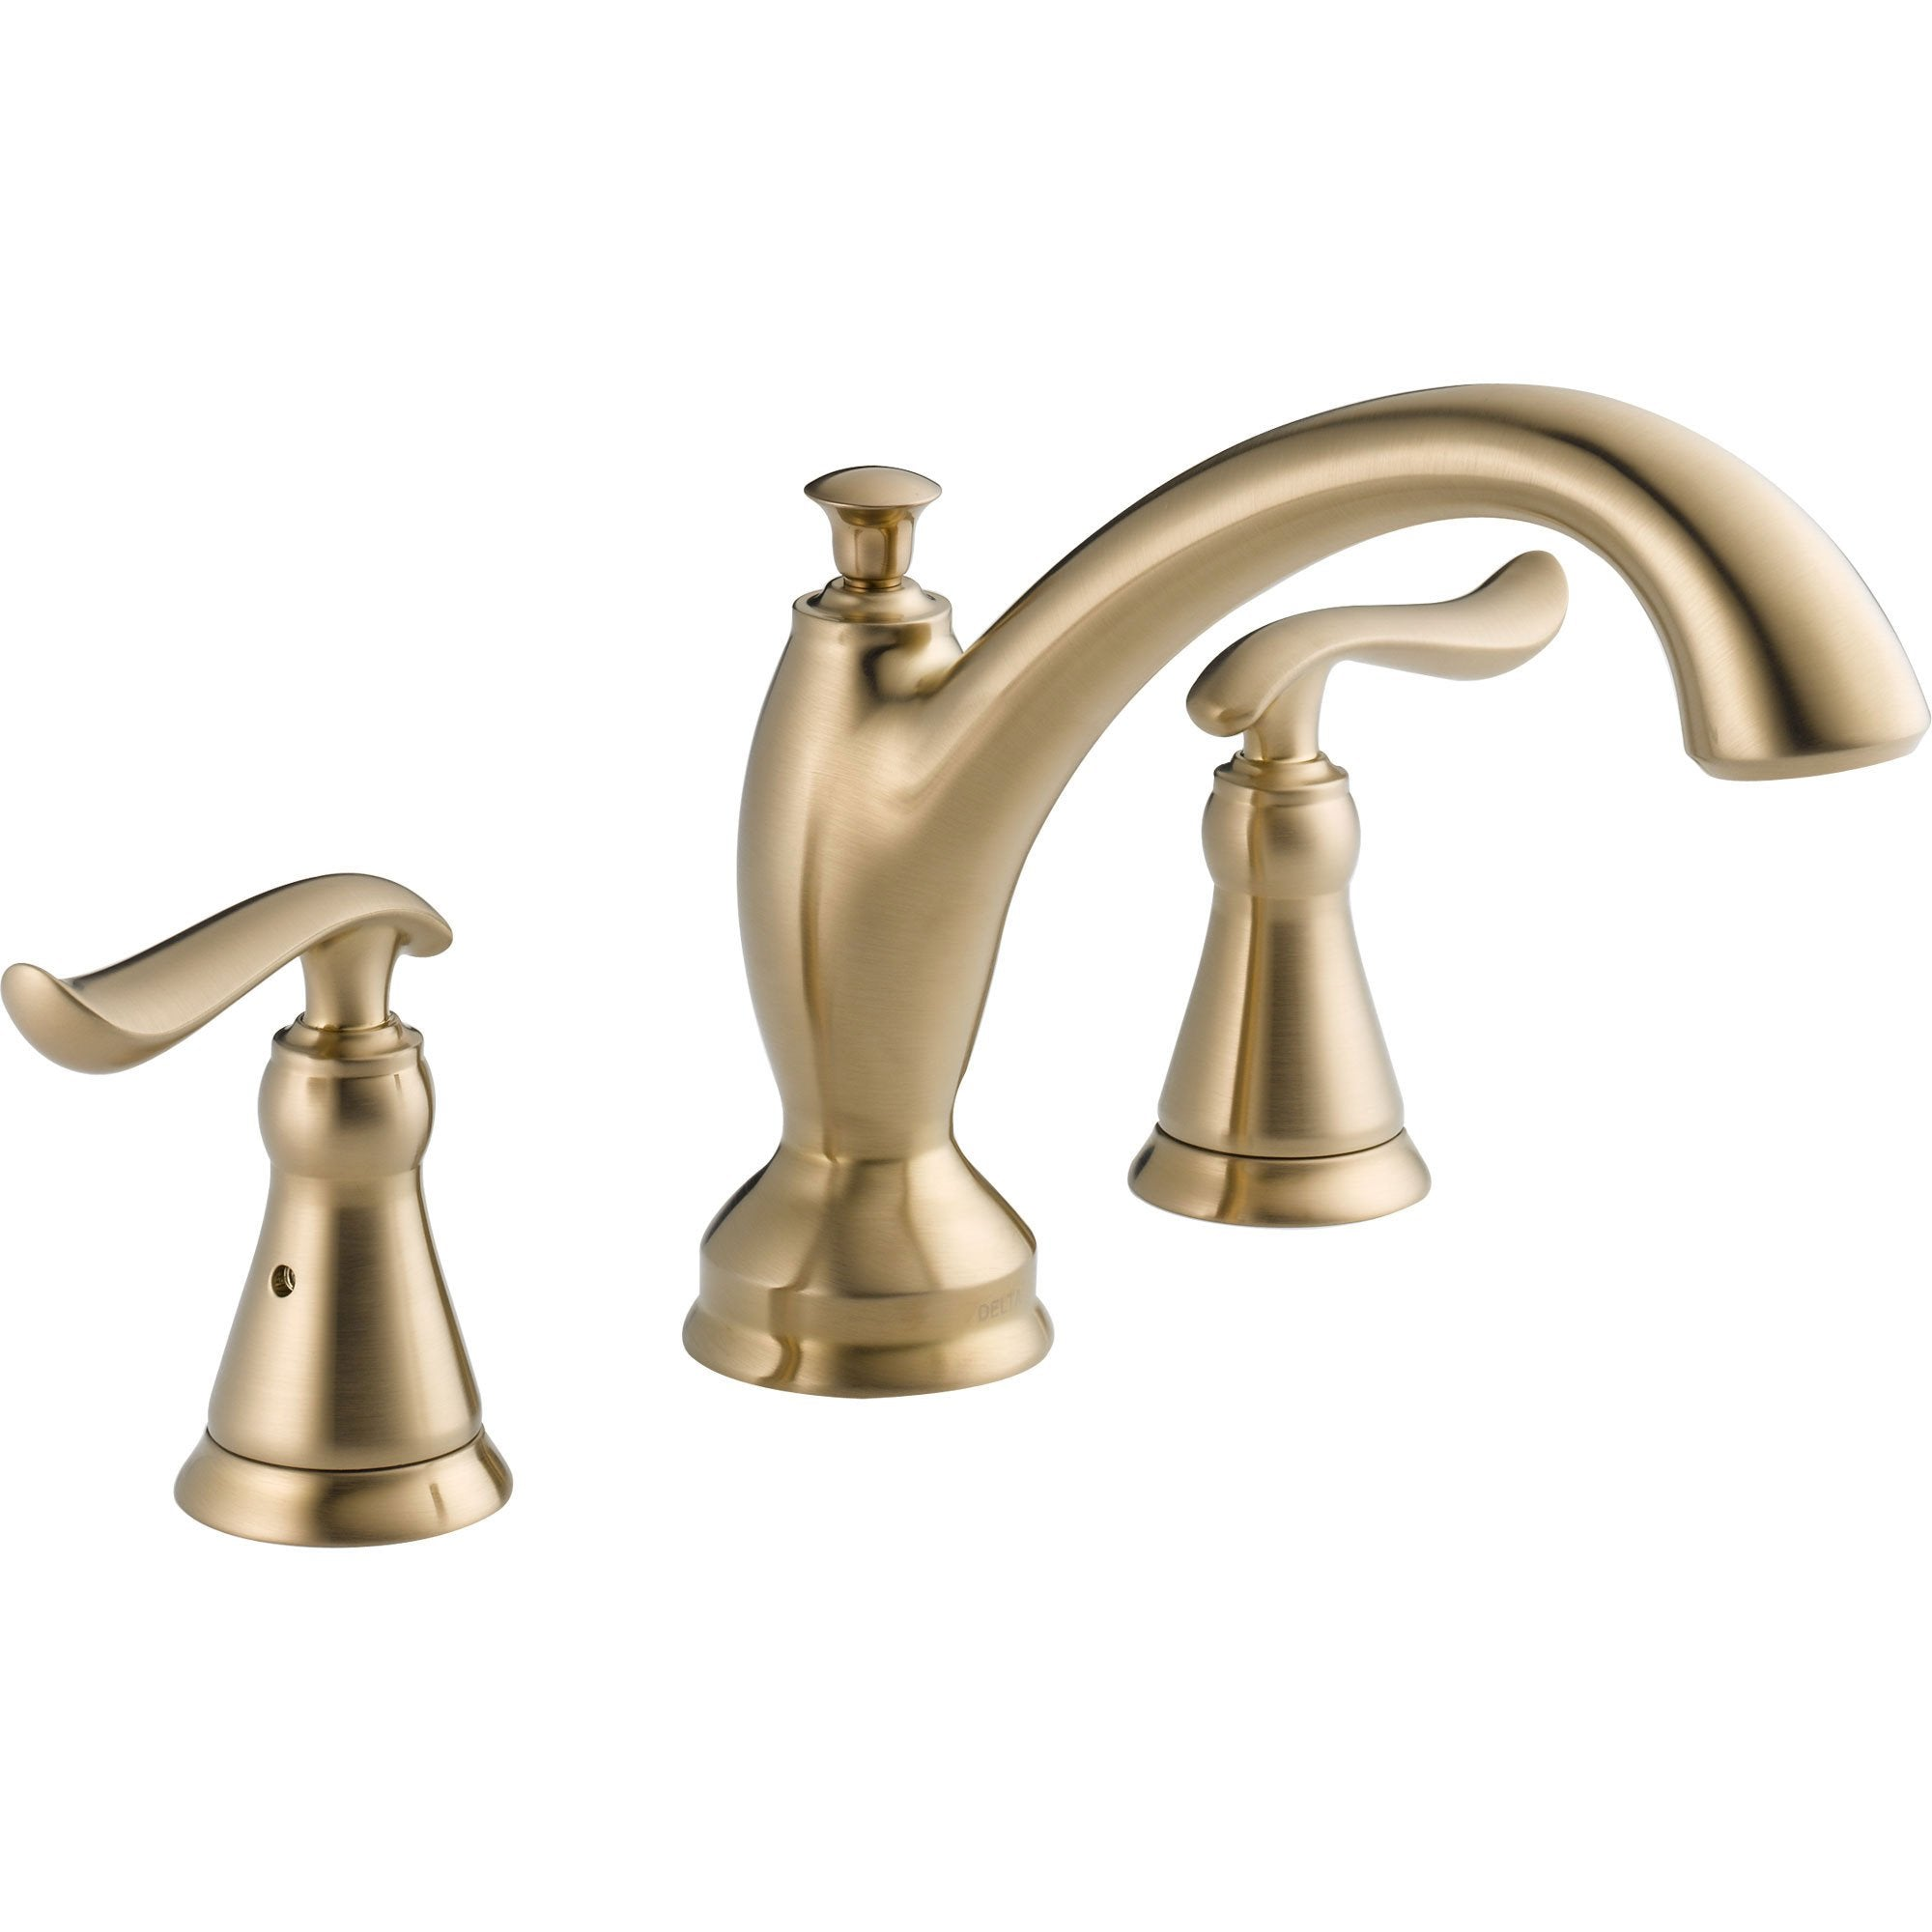 Delta Linden Champagne Bronze Deck Mount Roman Tub Filler Faucet Trim Kit 555623